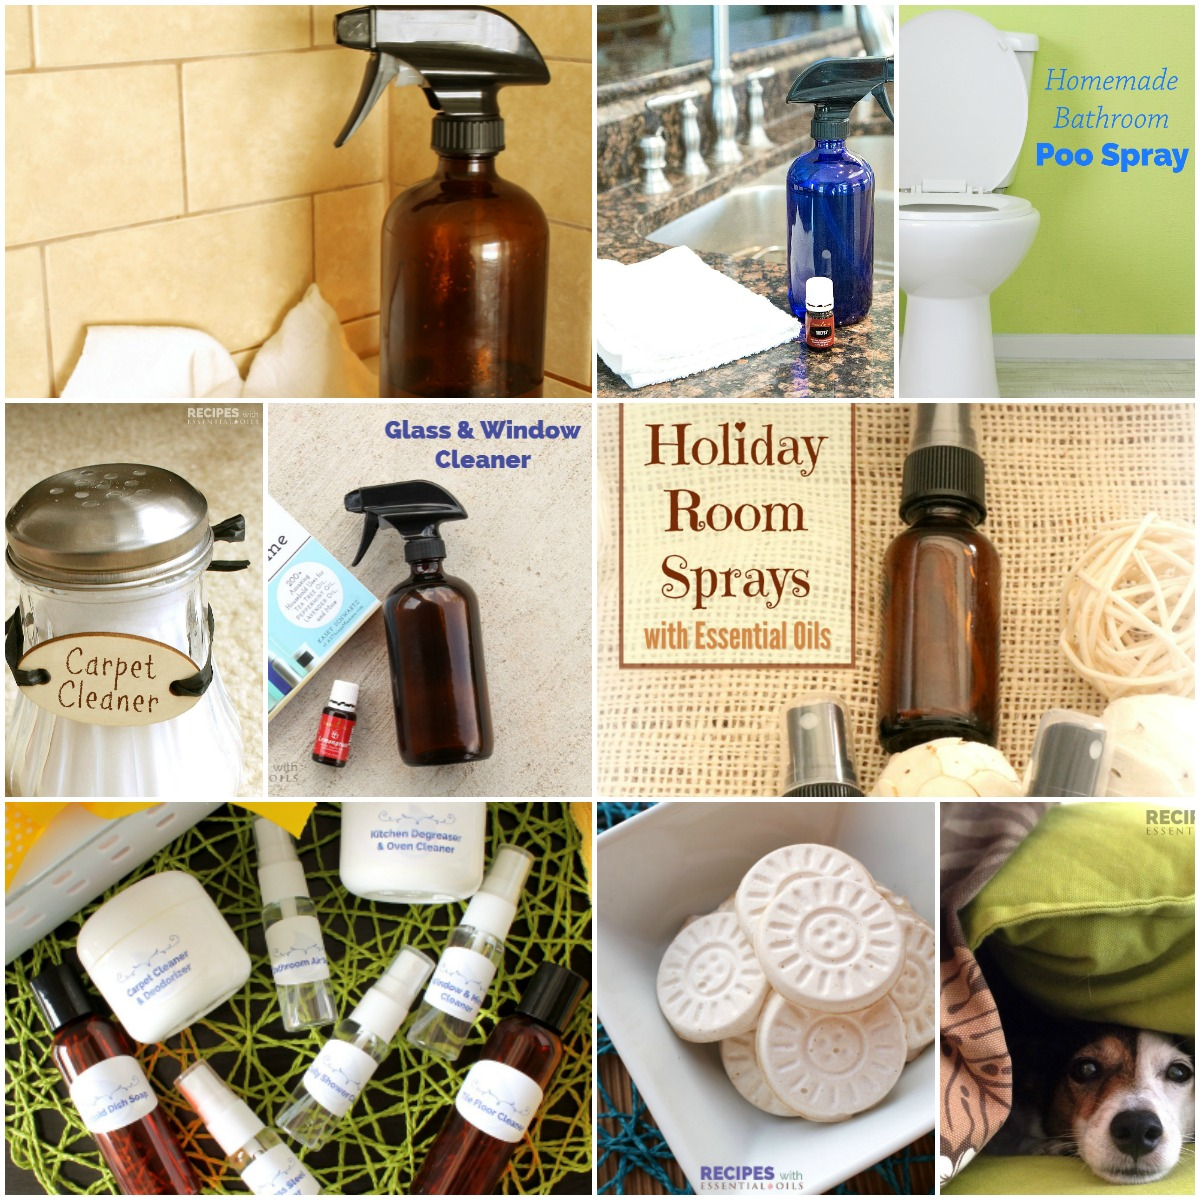 Household Cleaning Gift Basket ~ an oily gift idea for a pure non-toxic. New to essential oils?  sc 1 st  Recipes with Essential Oils & Household Cleaning Gift Basket - Recipes with Essential Oils